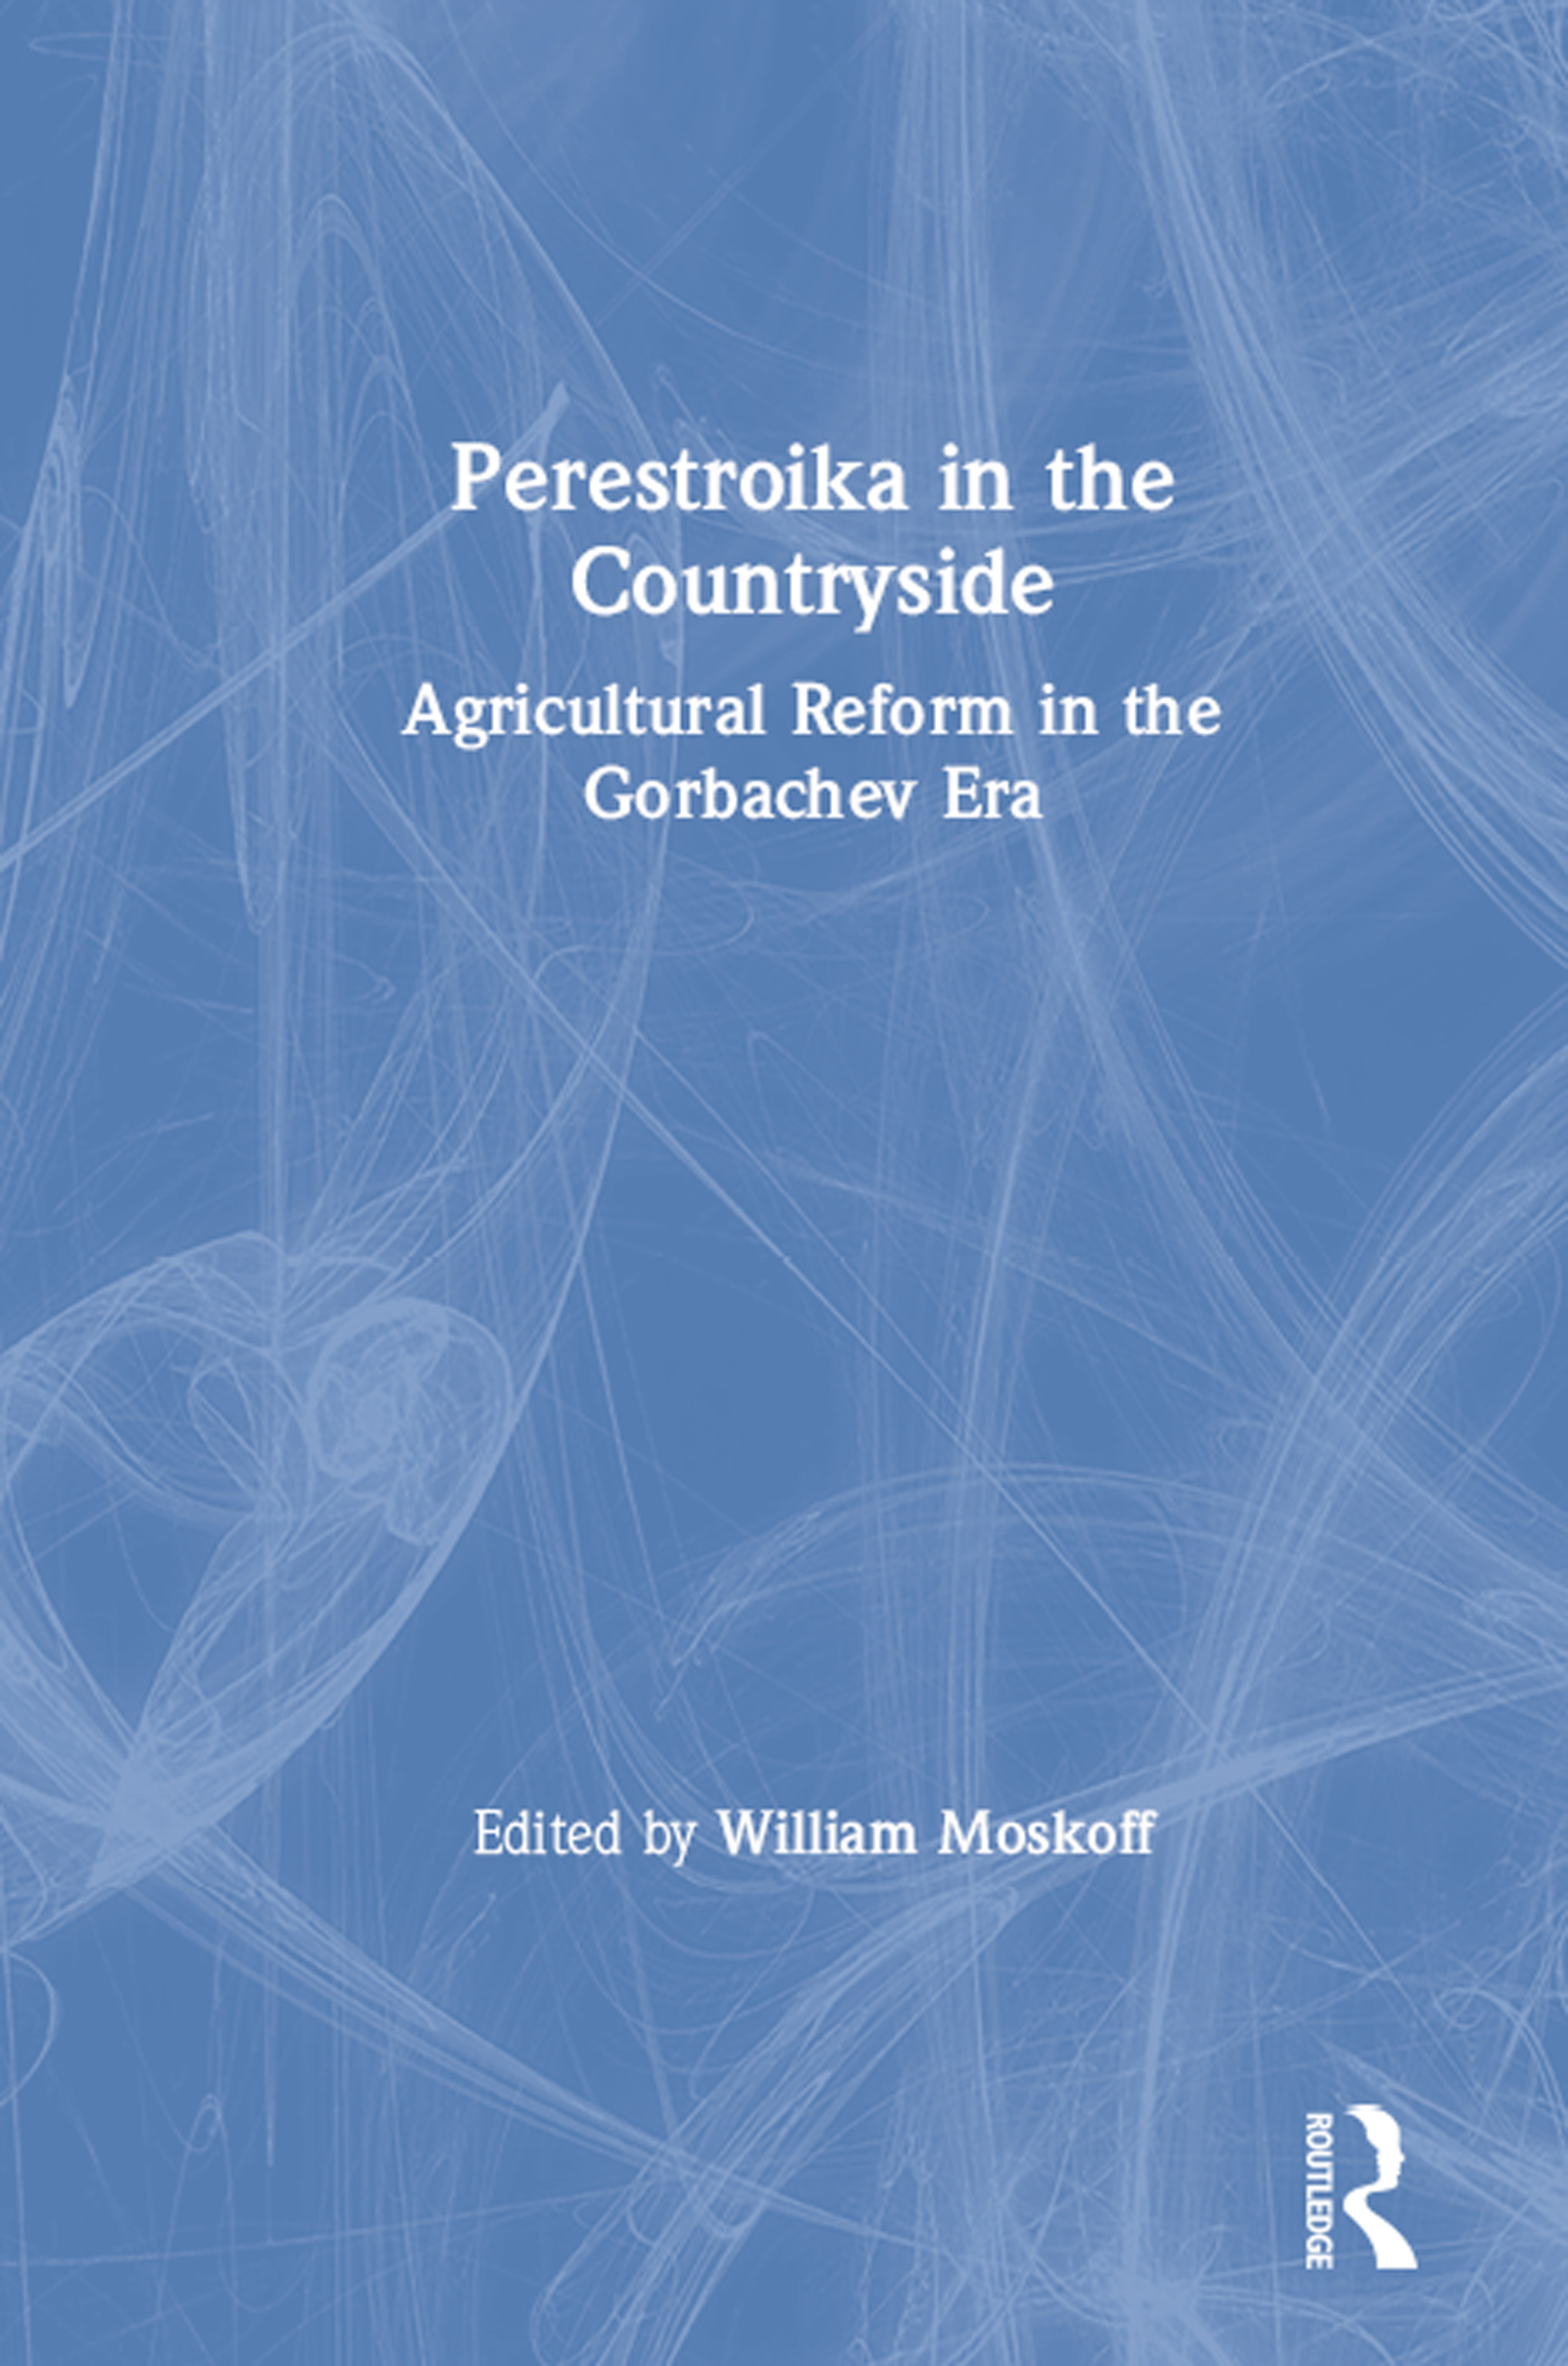 Perestroika in the Countryside: Agricultural Reform in the Gorbachev Era